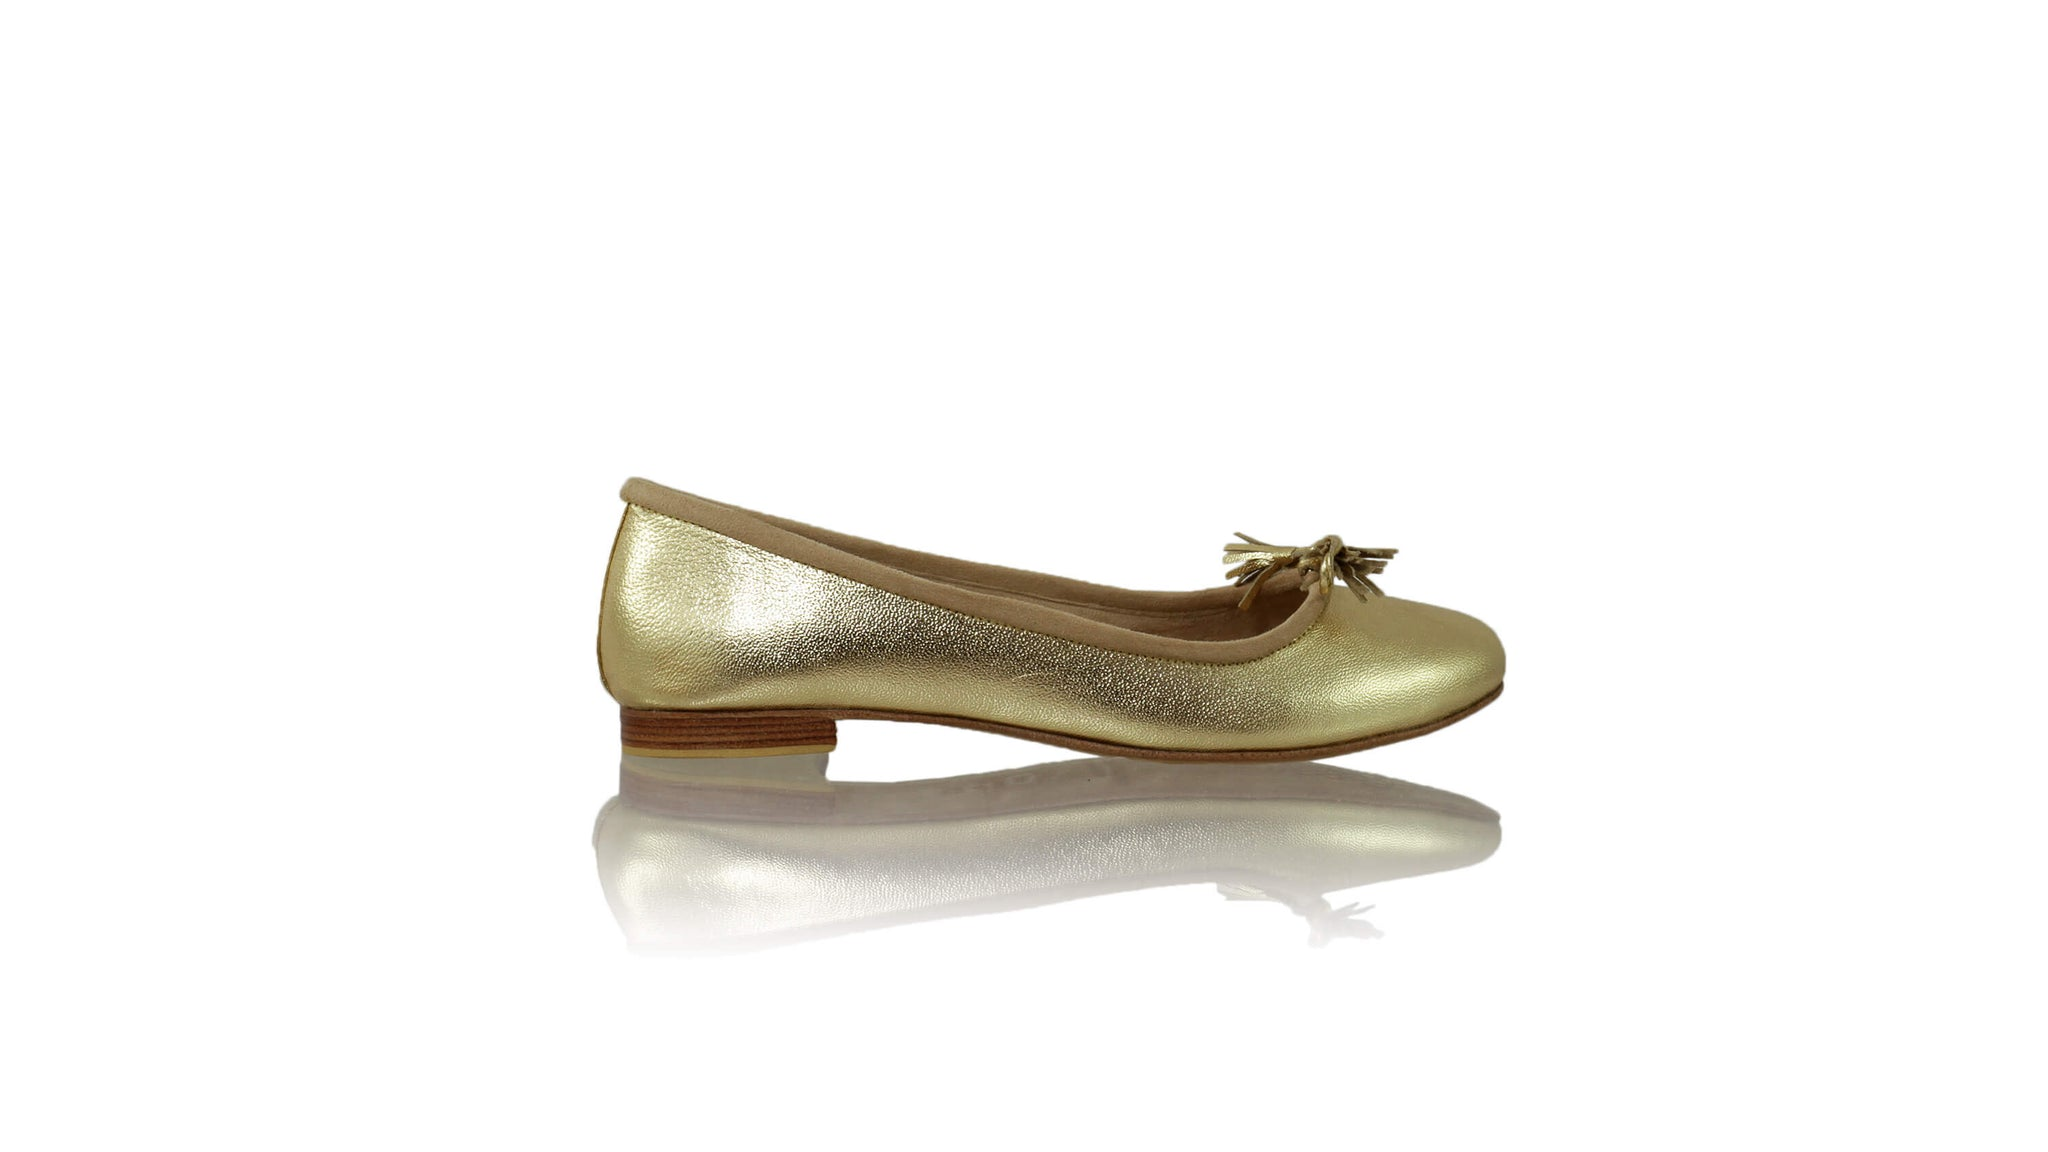 Leather-shoes-Noemi 20mm Ballet - Gold New-flats ballet-NILUH DJELANTIK-NILUH DJELANTIK